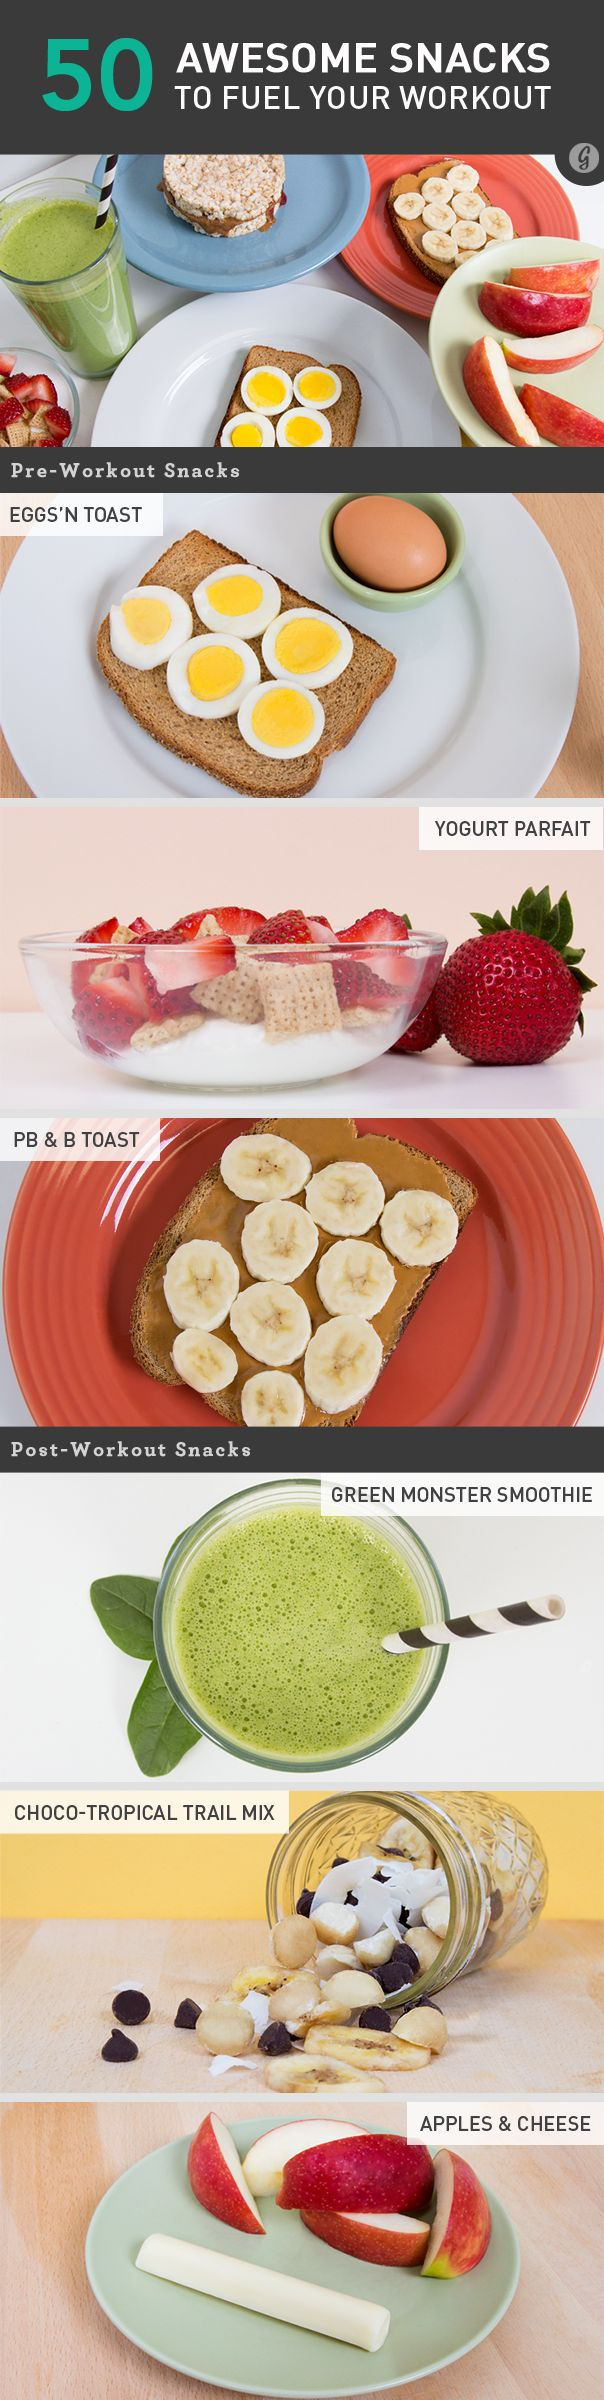 50 Awesome Pre- and Post-Workout Snacks #workout #fitness #snacks